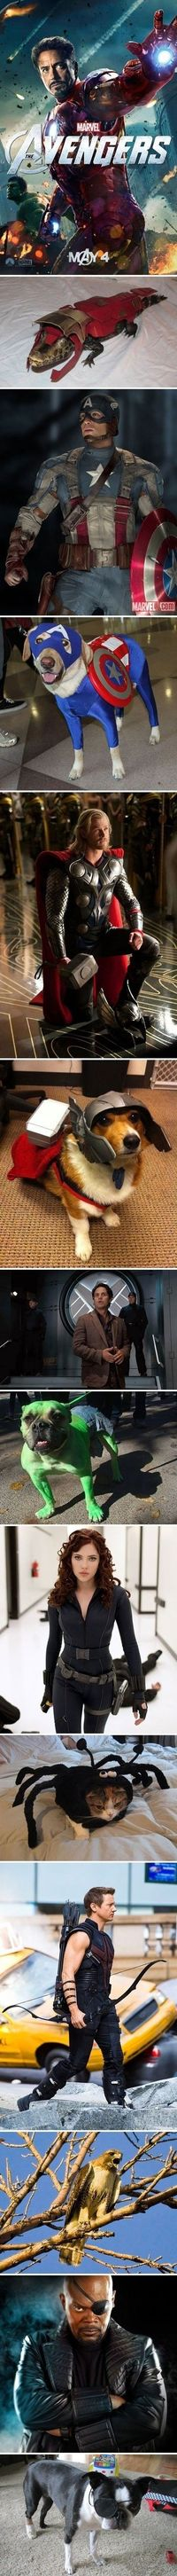 The Avengers and their animal counterparts.